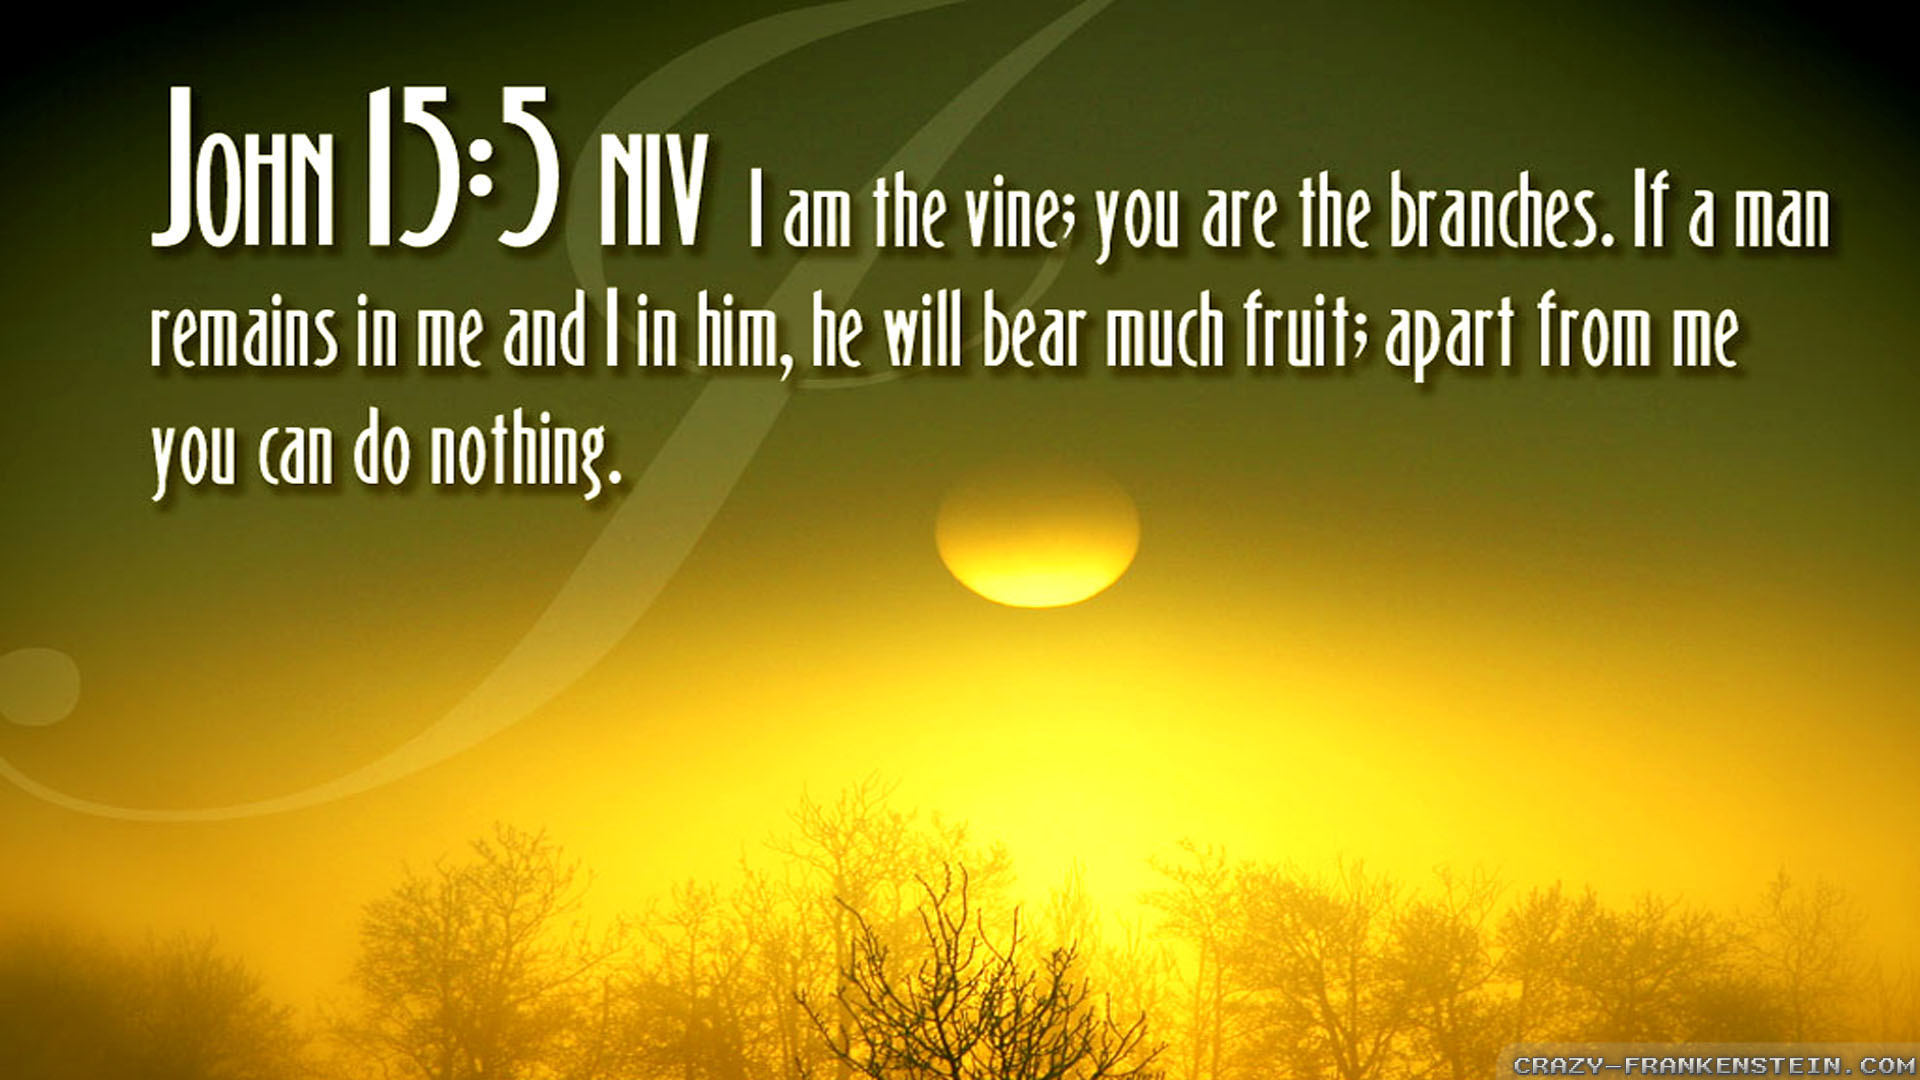 BIBLE VERSES quote text poster bible verses g wallpaper background 1920x1080